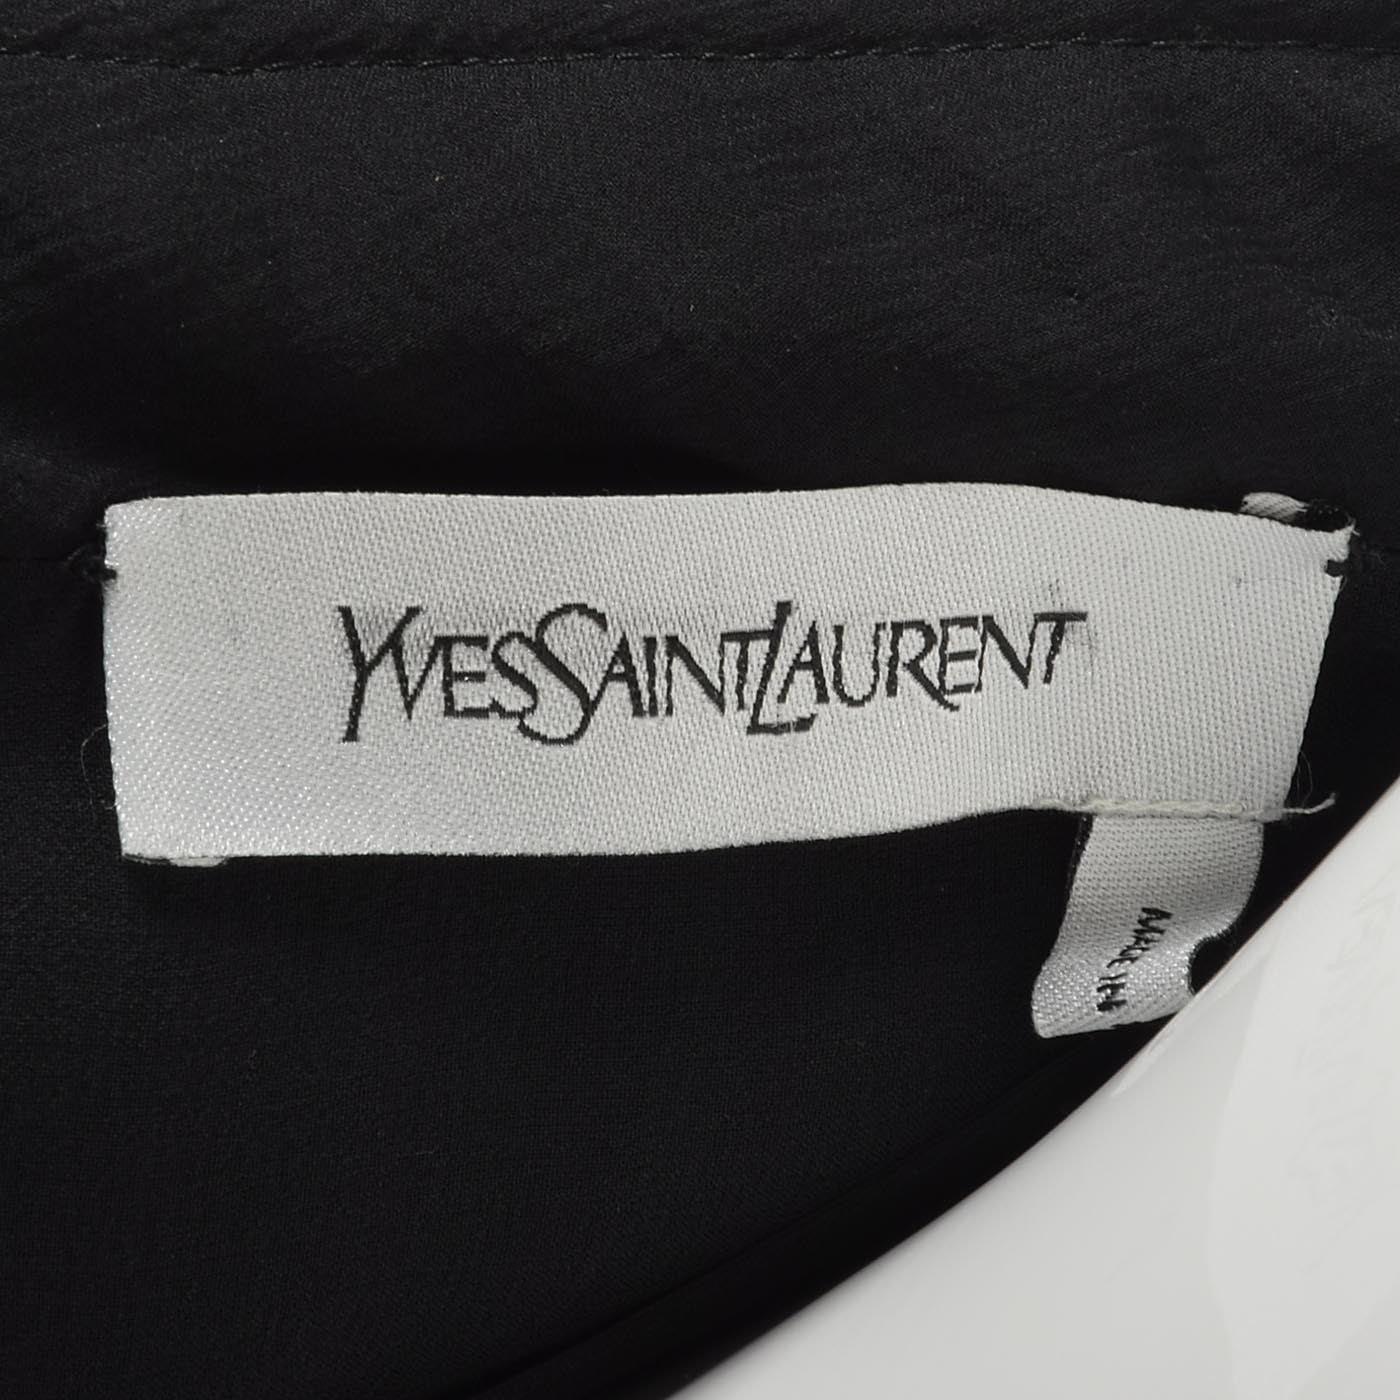 Yves Saint Laurent Black Velvet Dress with a Silk Chiffon Sash & Keyhole Waist